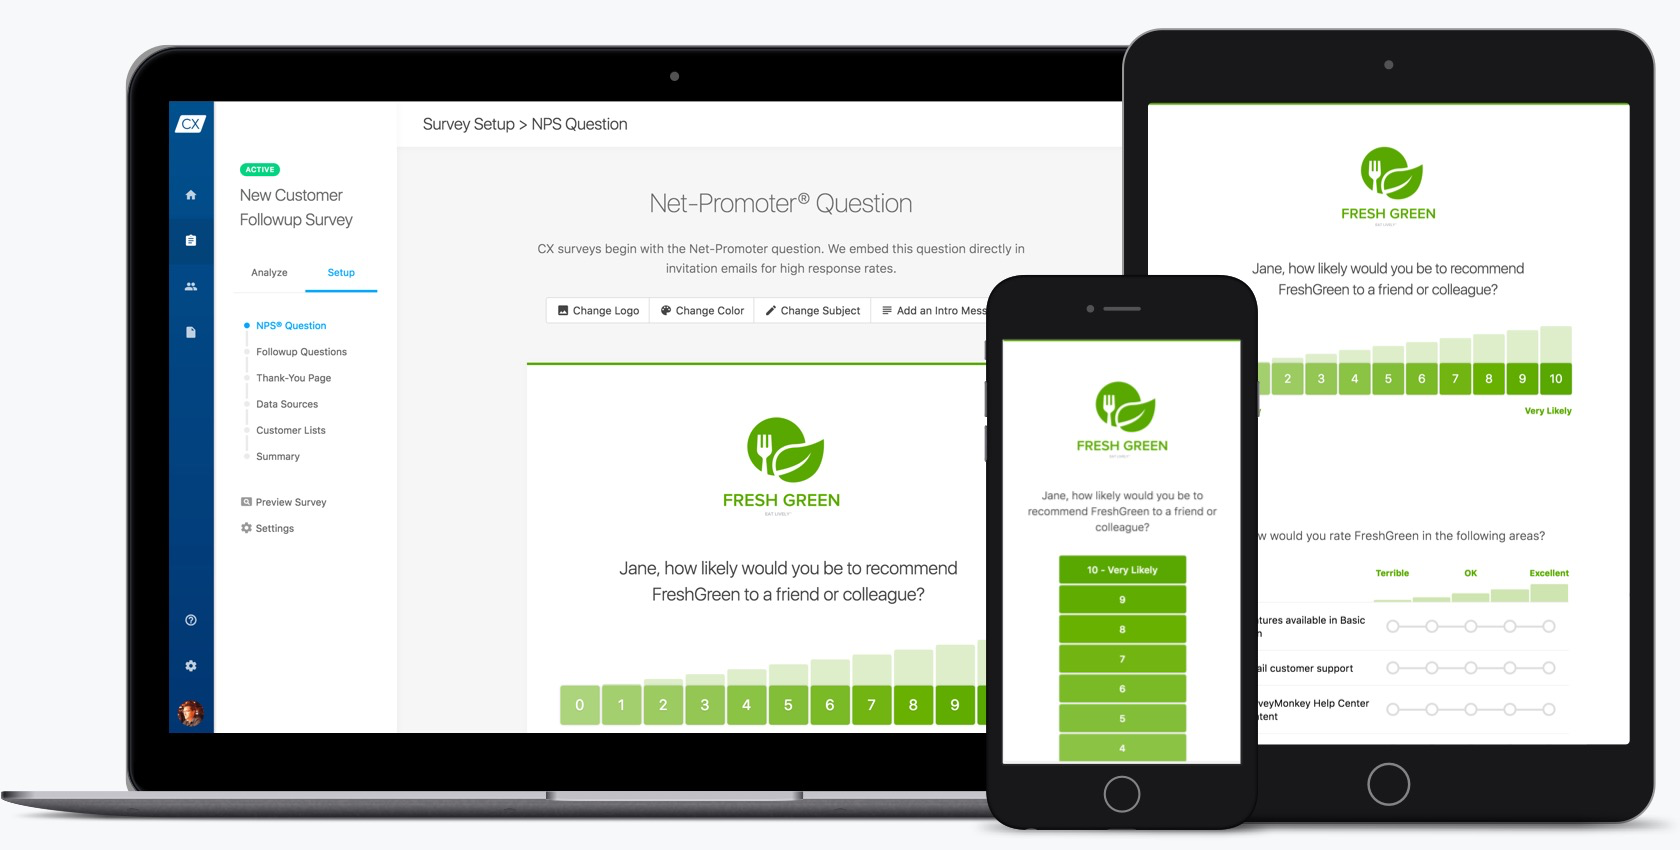 CX surveys are quick, clean, and branded for your business. Change colors, upload your logo, customize language, and edit questions in a fast and fun interface.